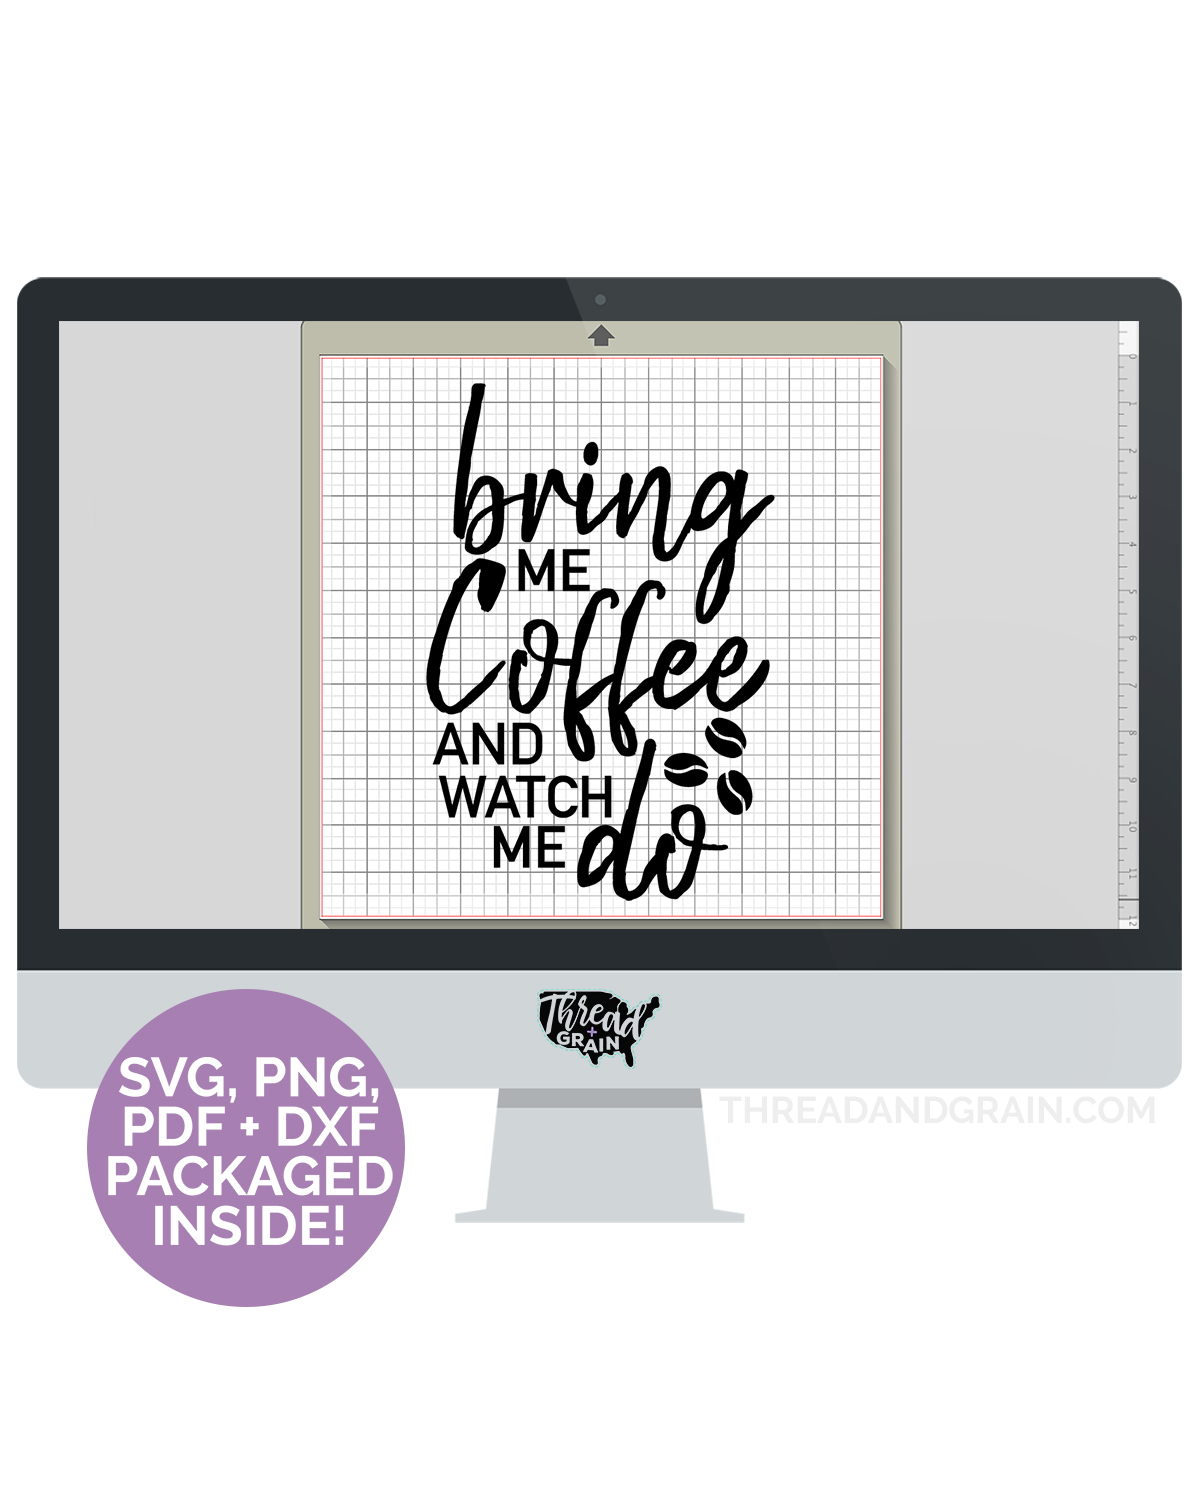 Bring Me Coffee and Watch Me Do DIGITAL CUT FILE